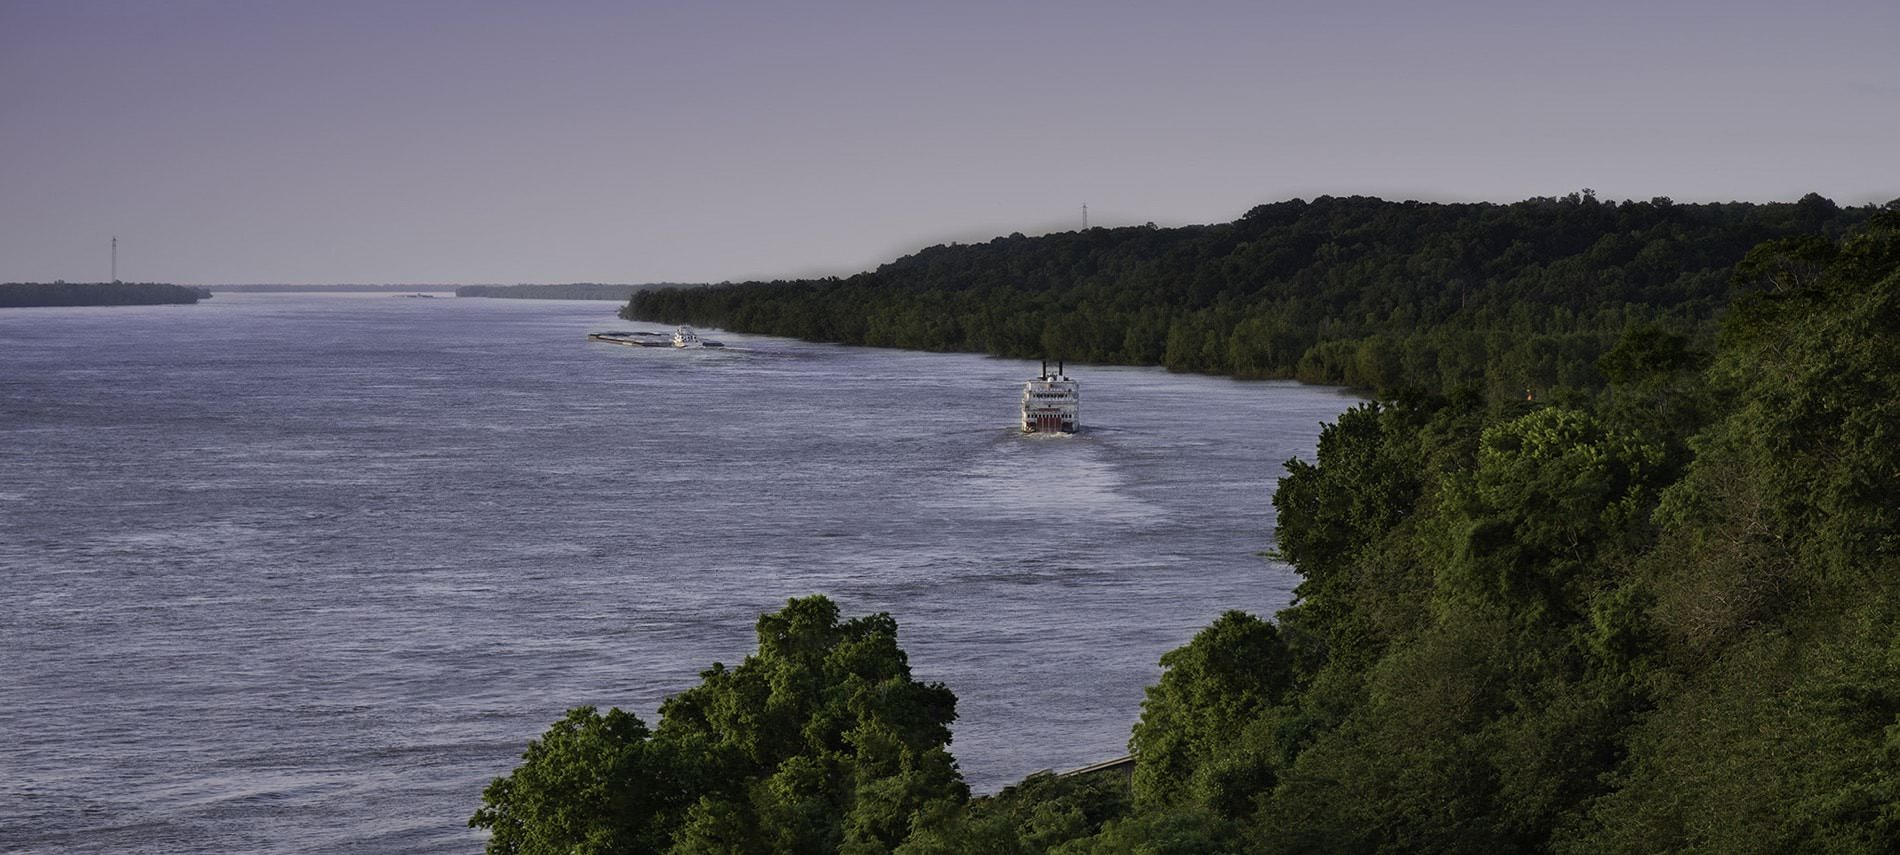 View of trees lining the shore of a lake with a ferry boat riding down the water on a cloudy day